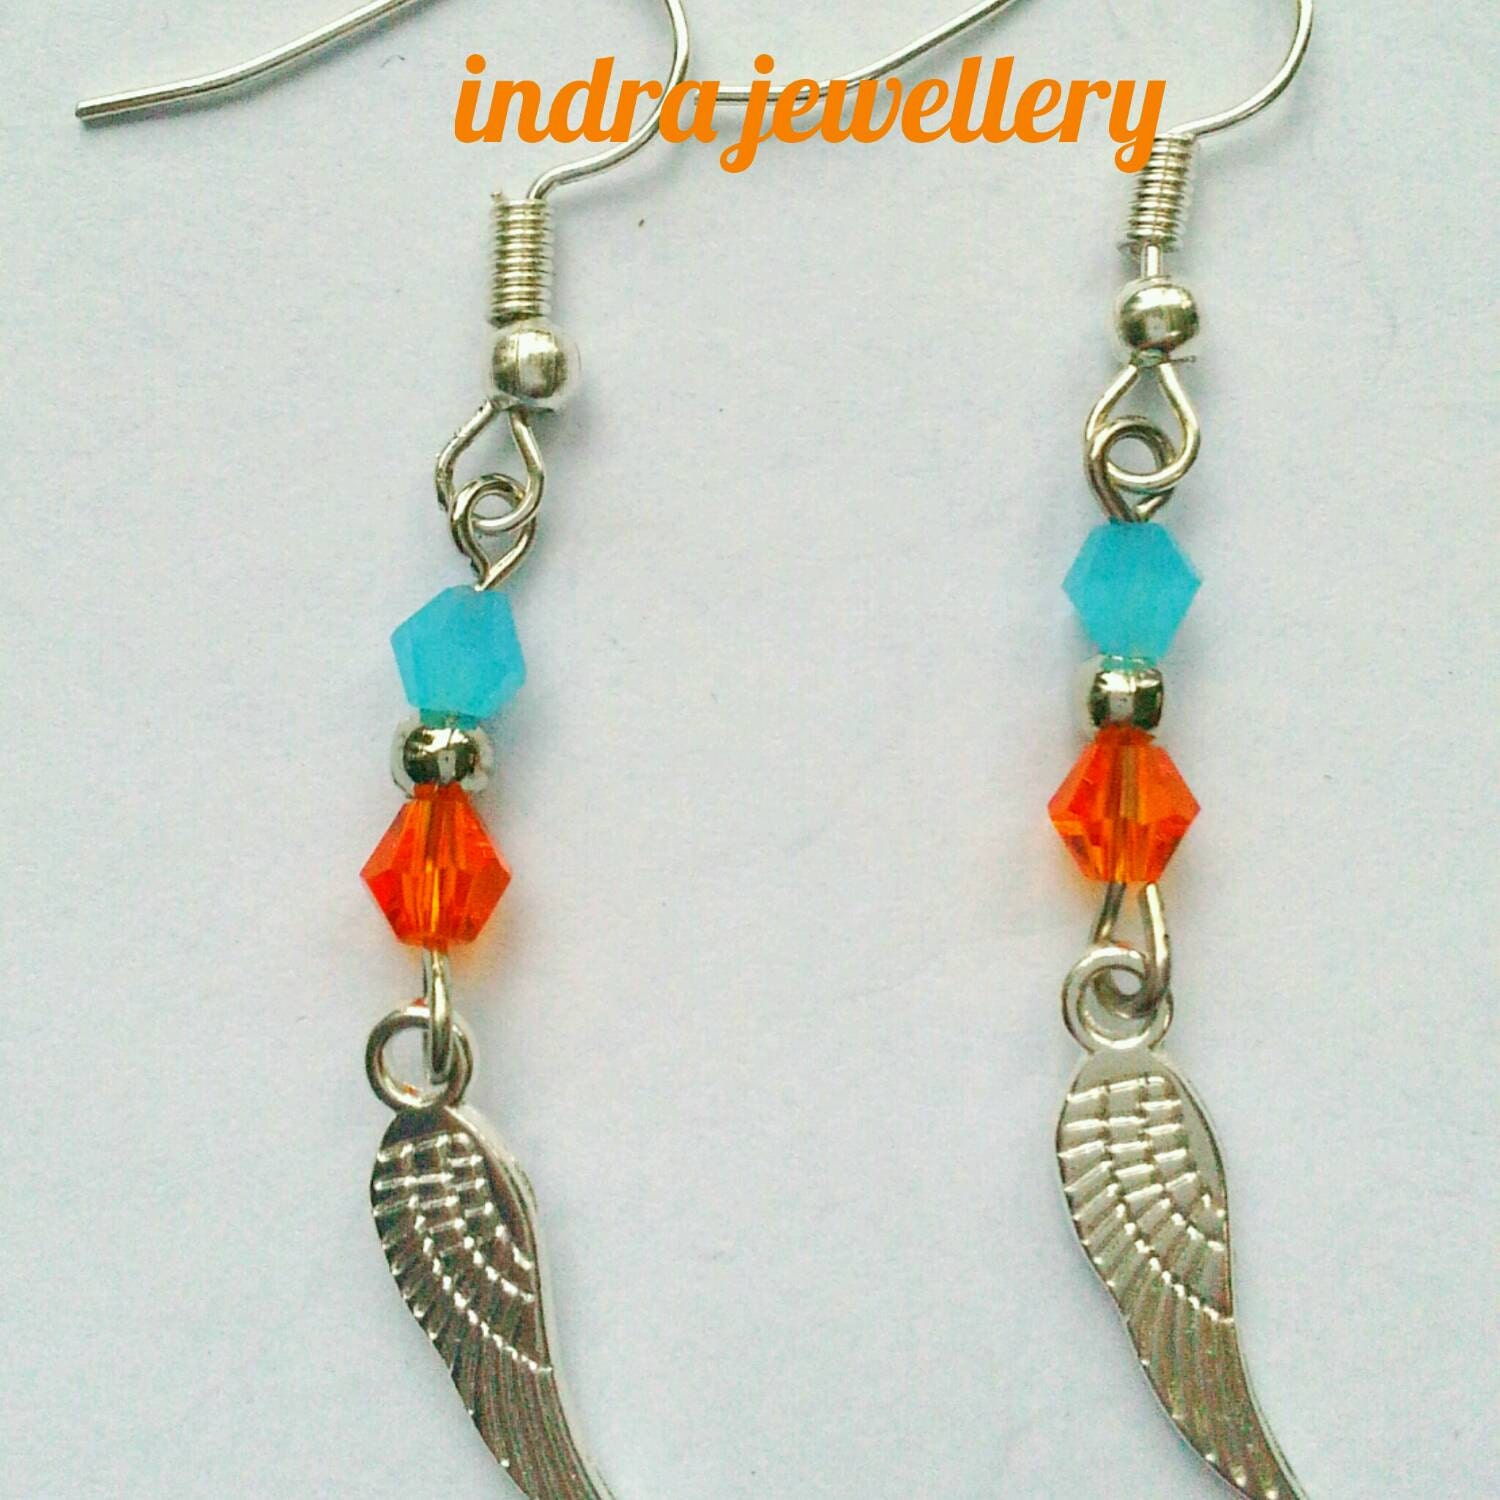 Angel wing earrings swarovski earrings angel wing jewelry beaded dangle earrings angel earrings